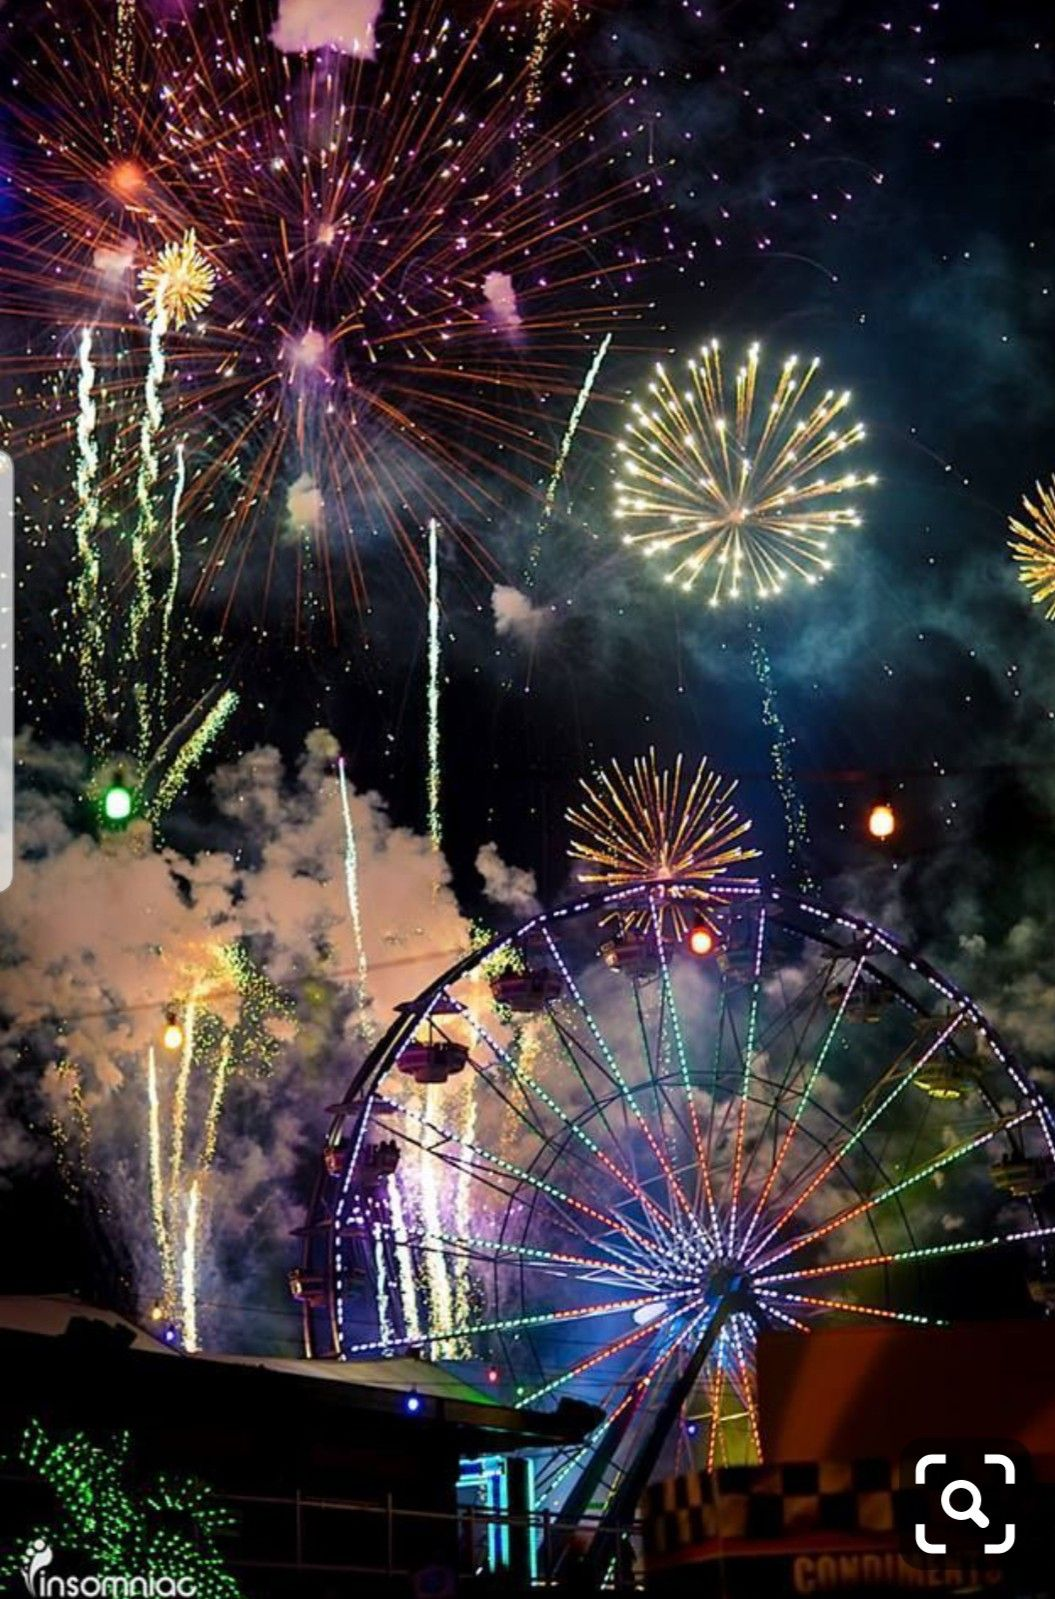 Pin by Patti Meyer on Paintings Fireworks New year